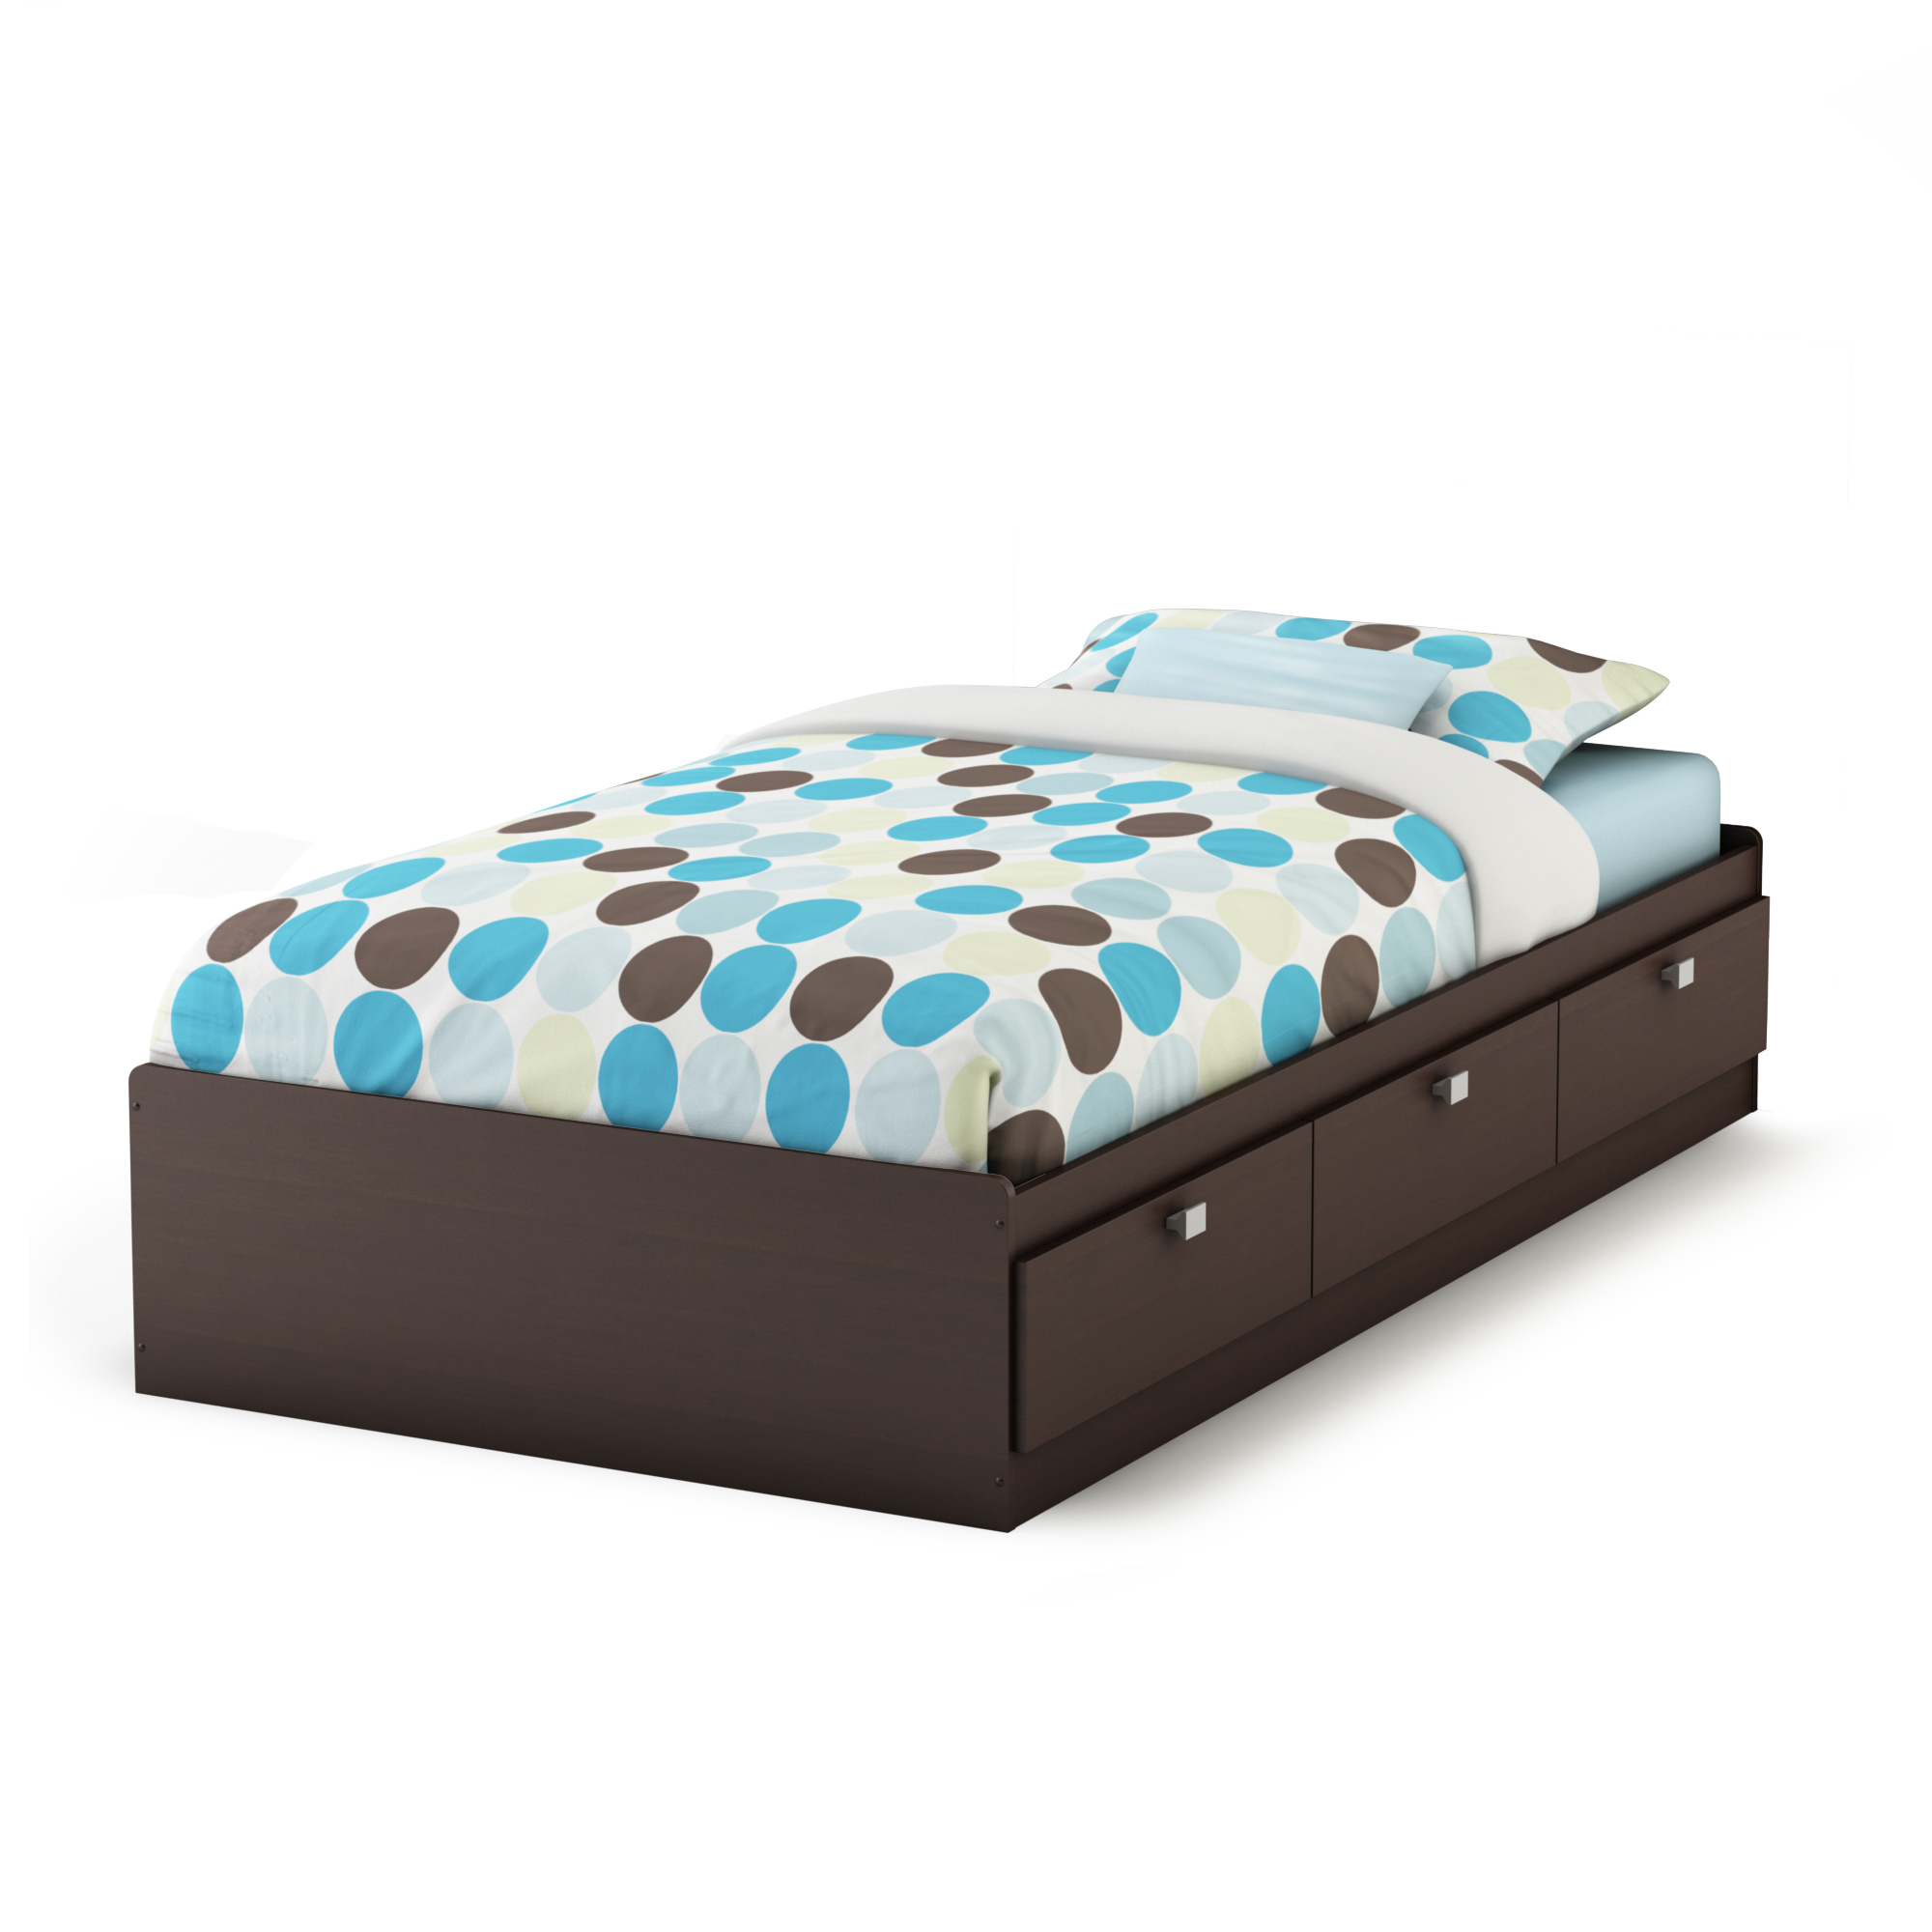 south shore spark twin 39 mates bed with 3 drawers multiple finishes walmartcom